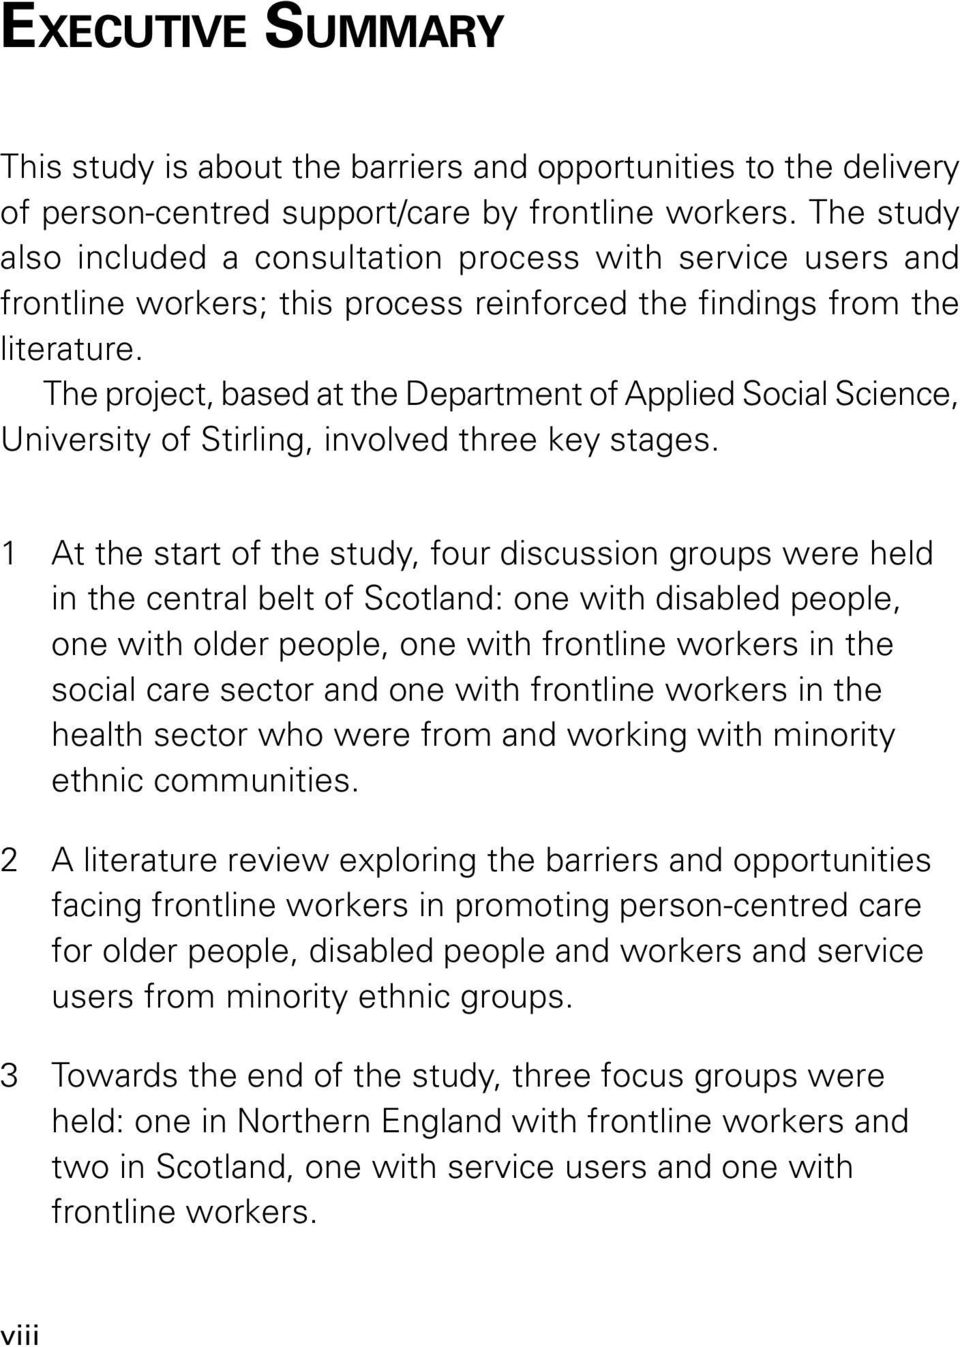 The project, based at the Department of Applied Social Science, University of Stirling, involved three key stages.